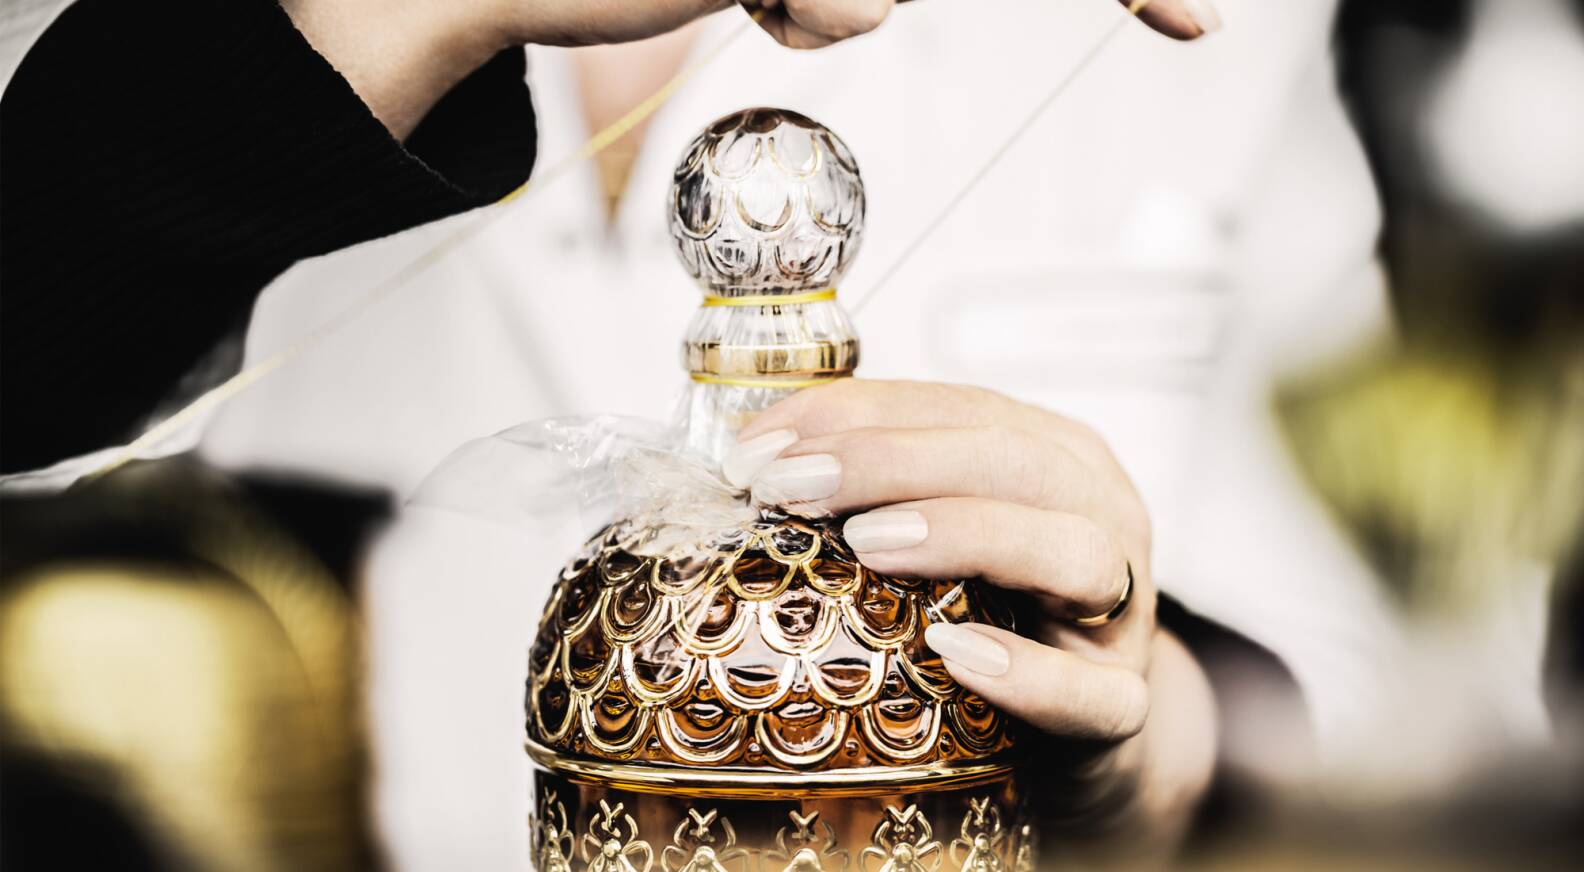 190 Guerlain Years Creation Lvmh Celebrates Of kPZiXu